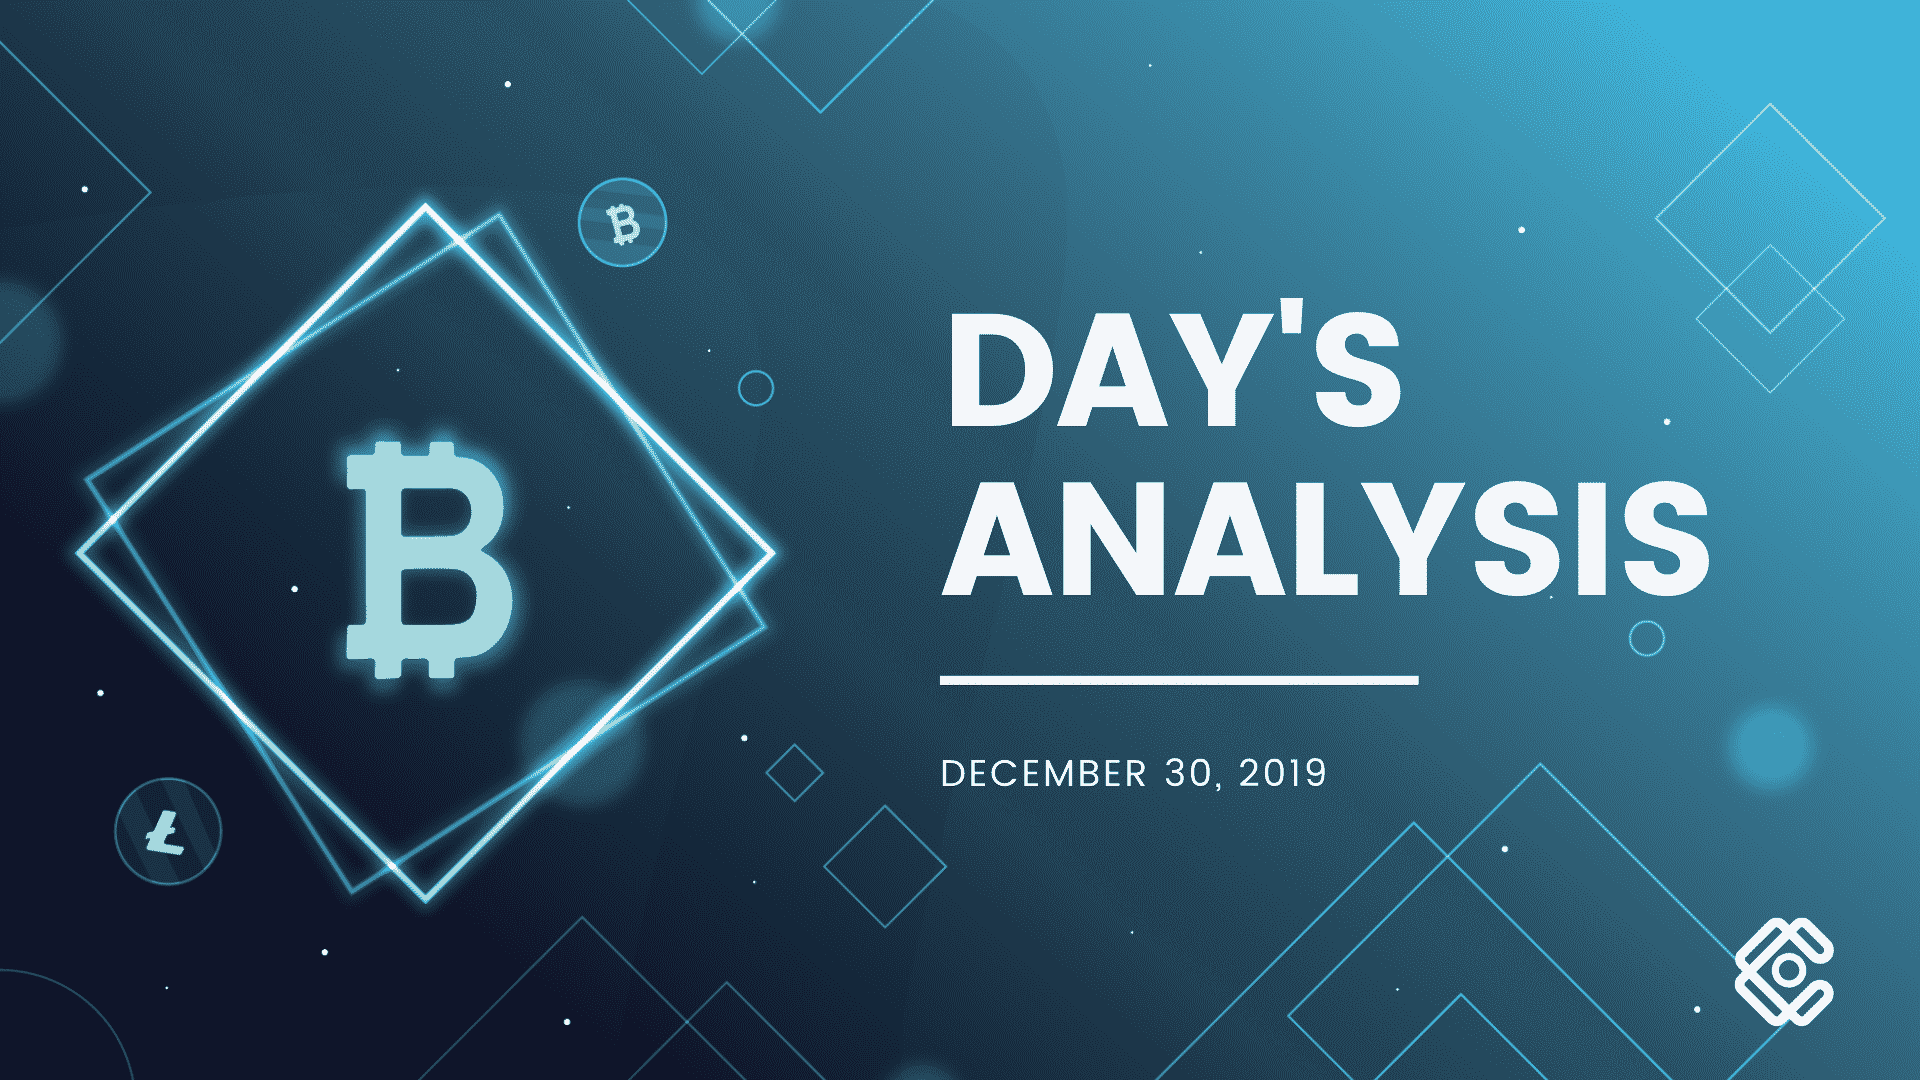 Market Analysis of December 30, 2019